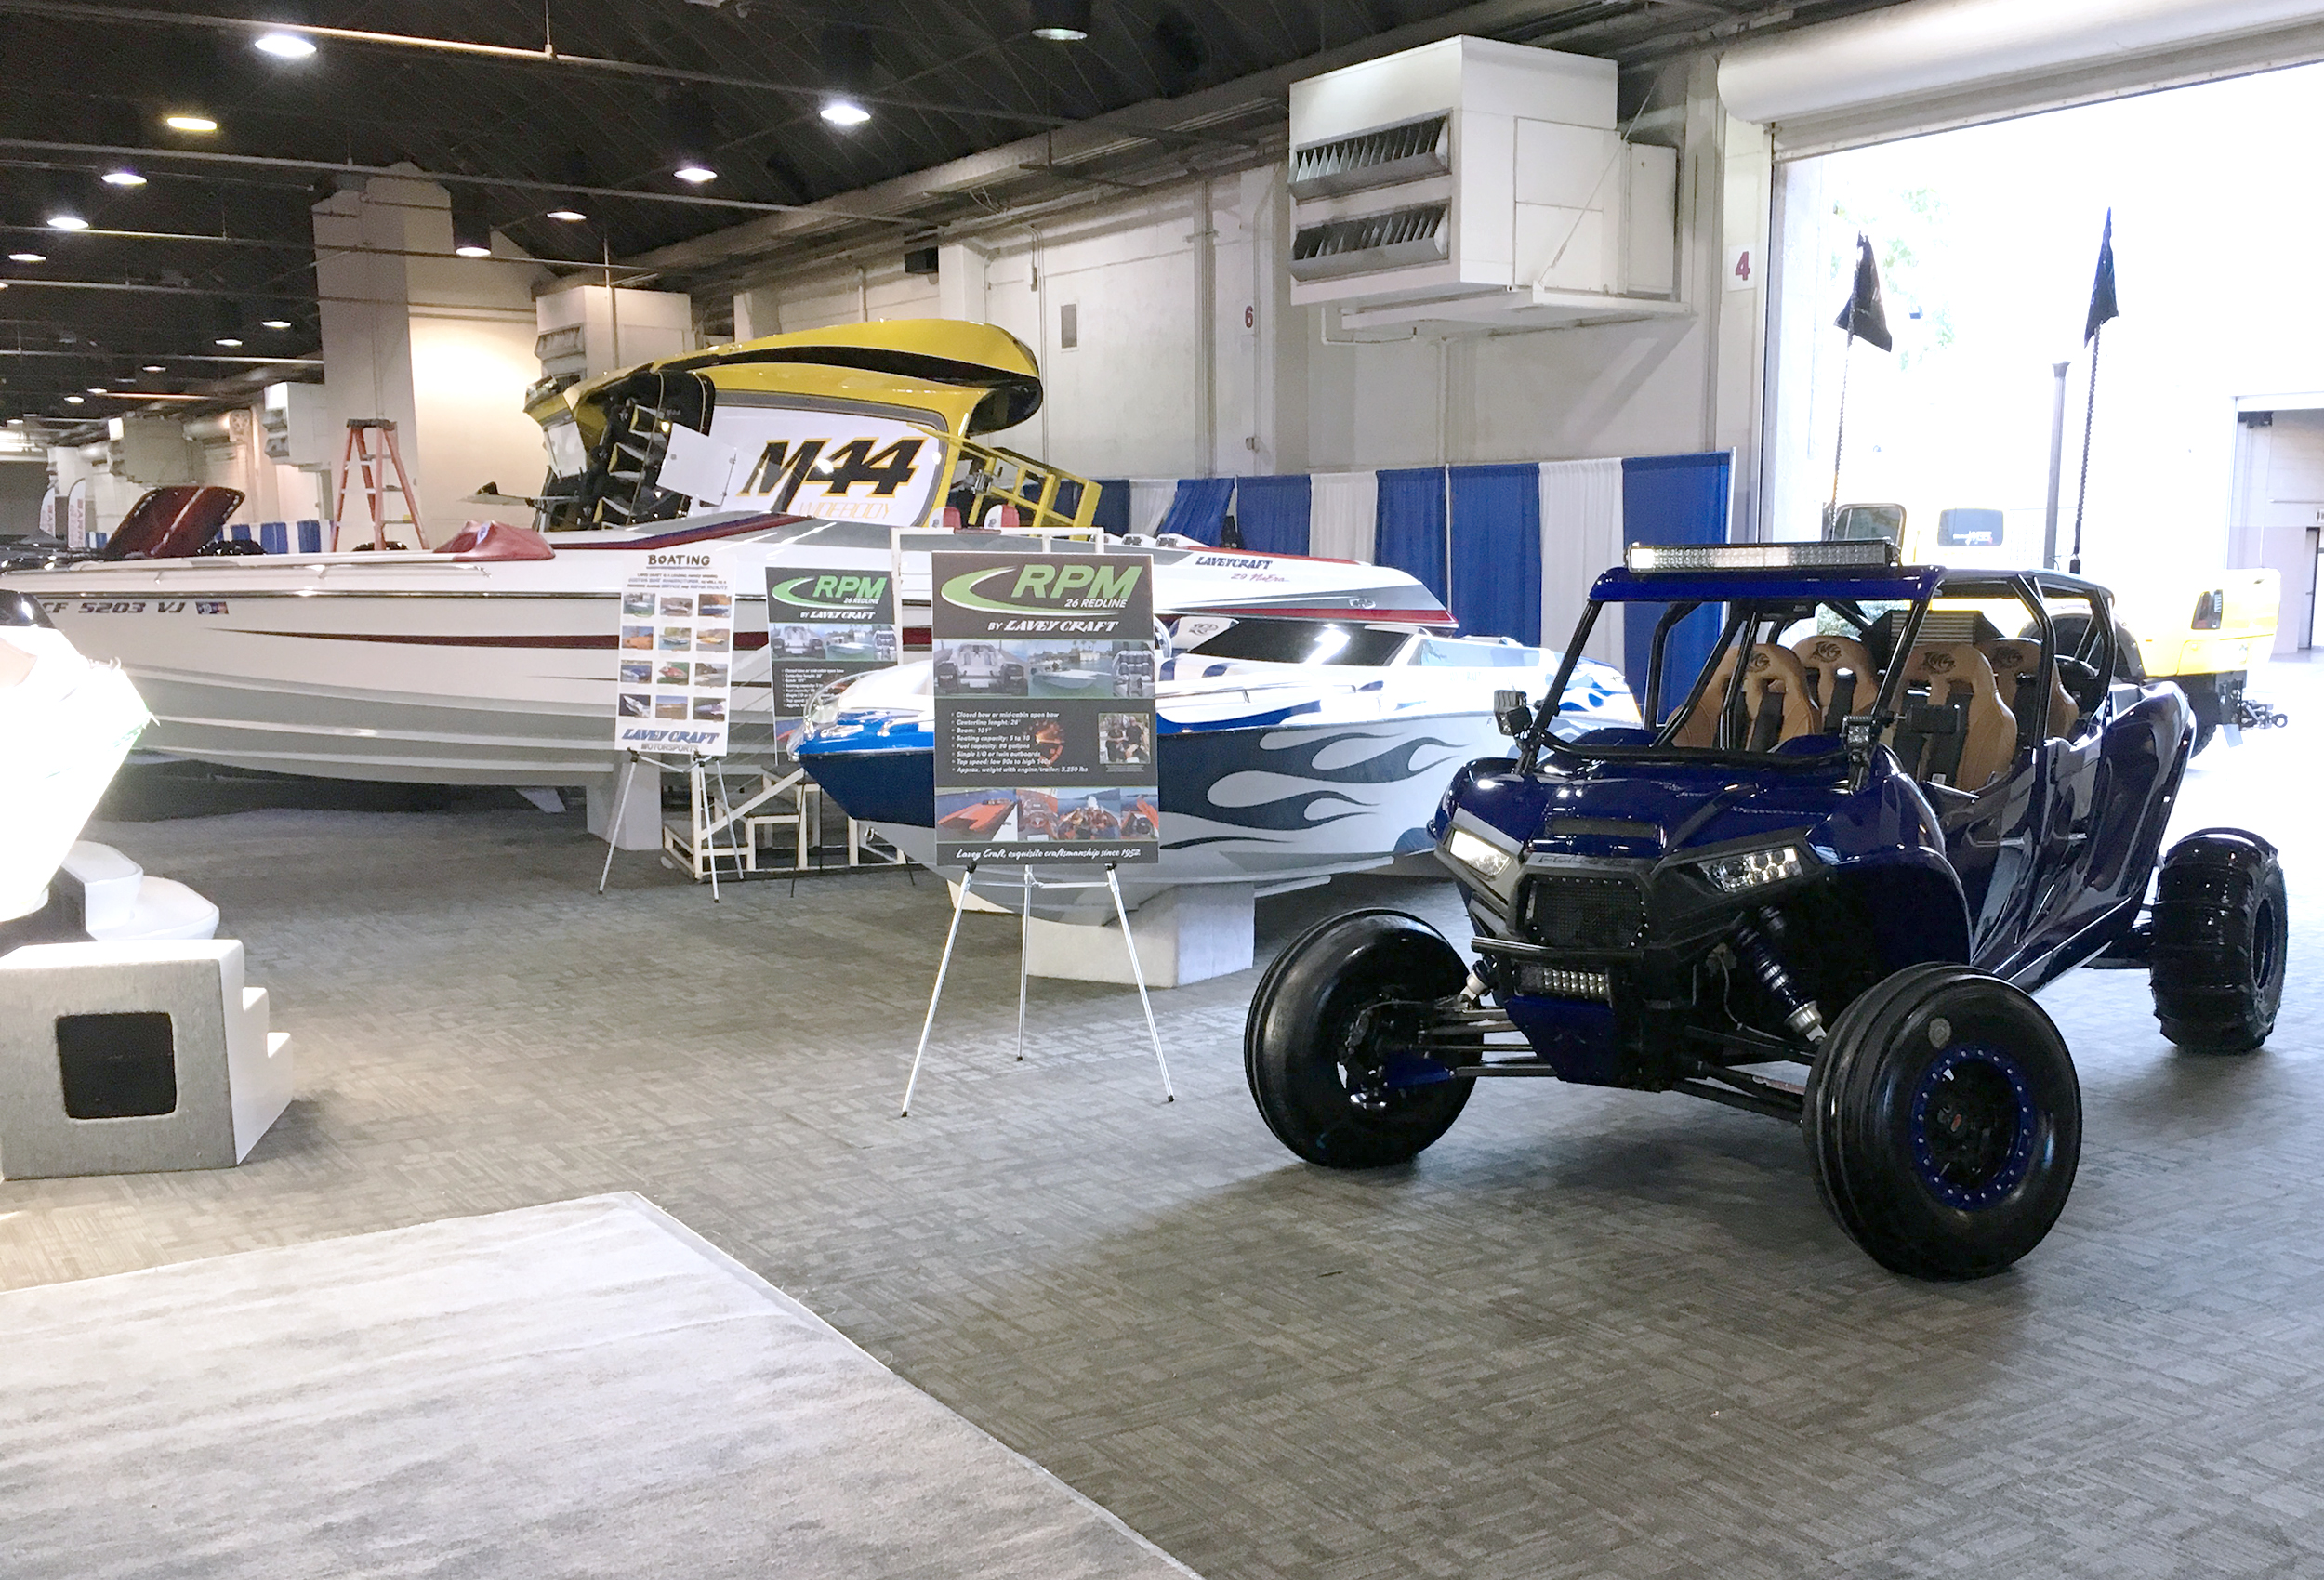 LA Boat Show 2019 - Lavey Craft booth - pic 2.jpg